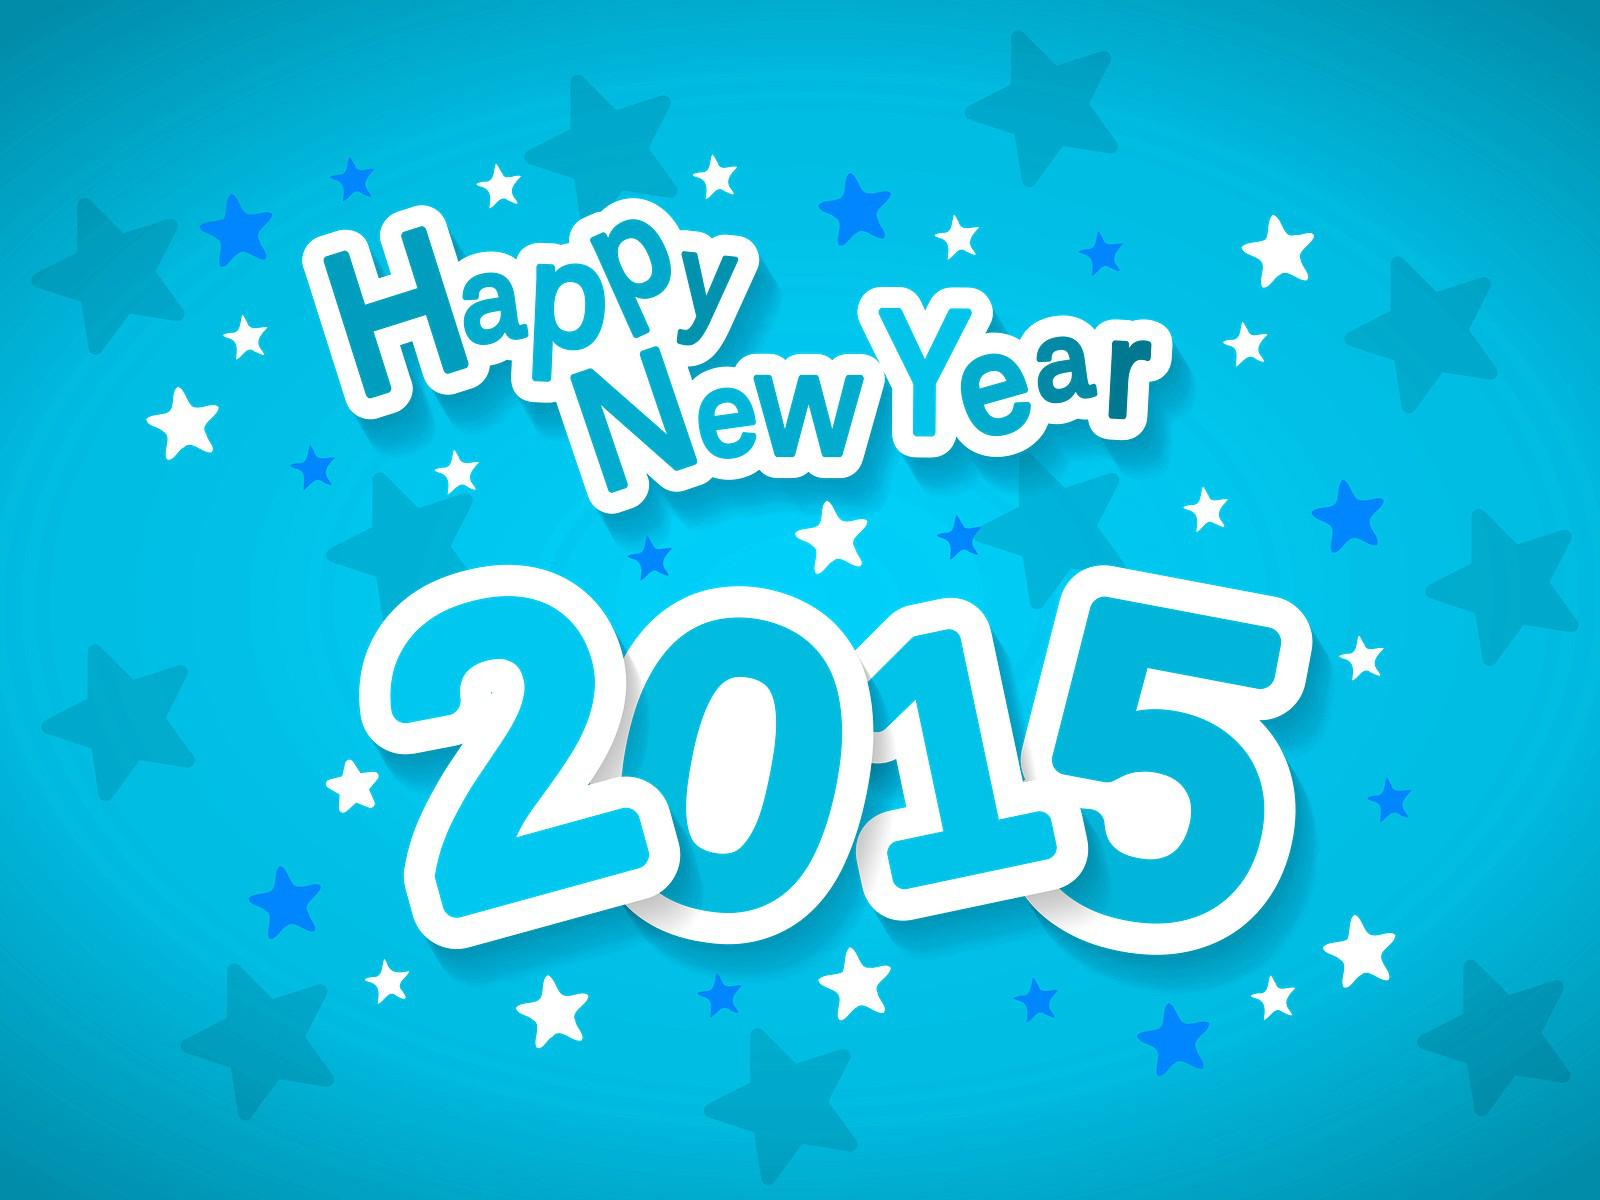 Happy New Year 2015 style blue wallpaper colorful Wallpaper Better 1600x1200